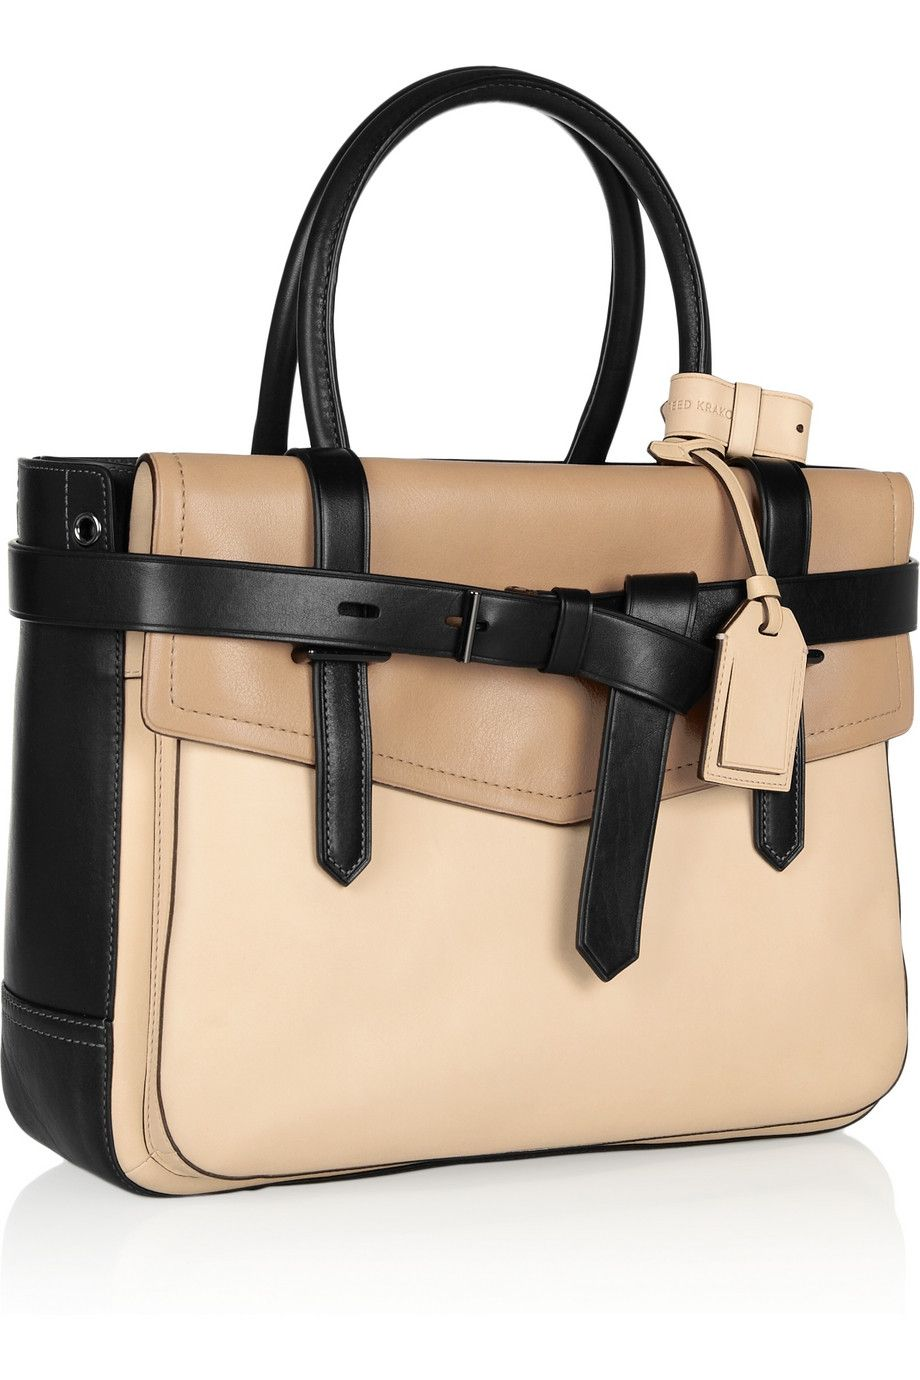 Reed Krakoff | Boxer leather tote